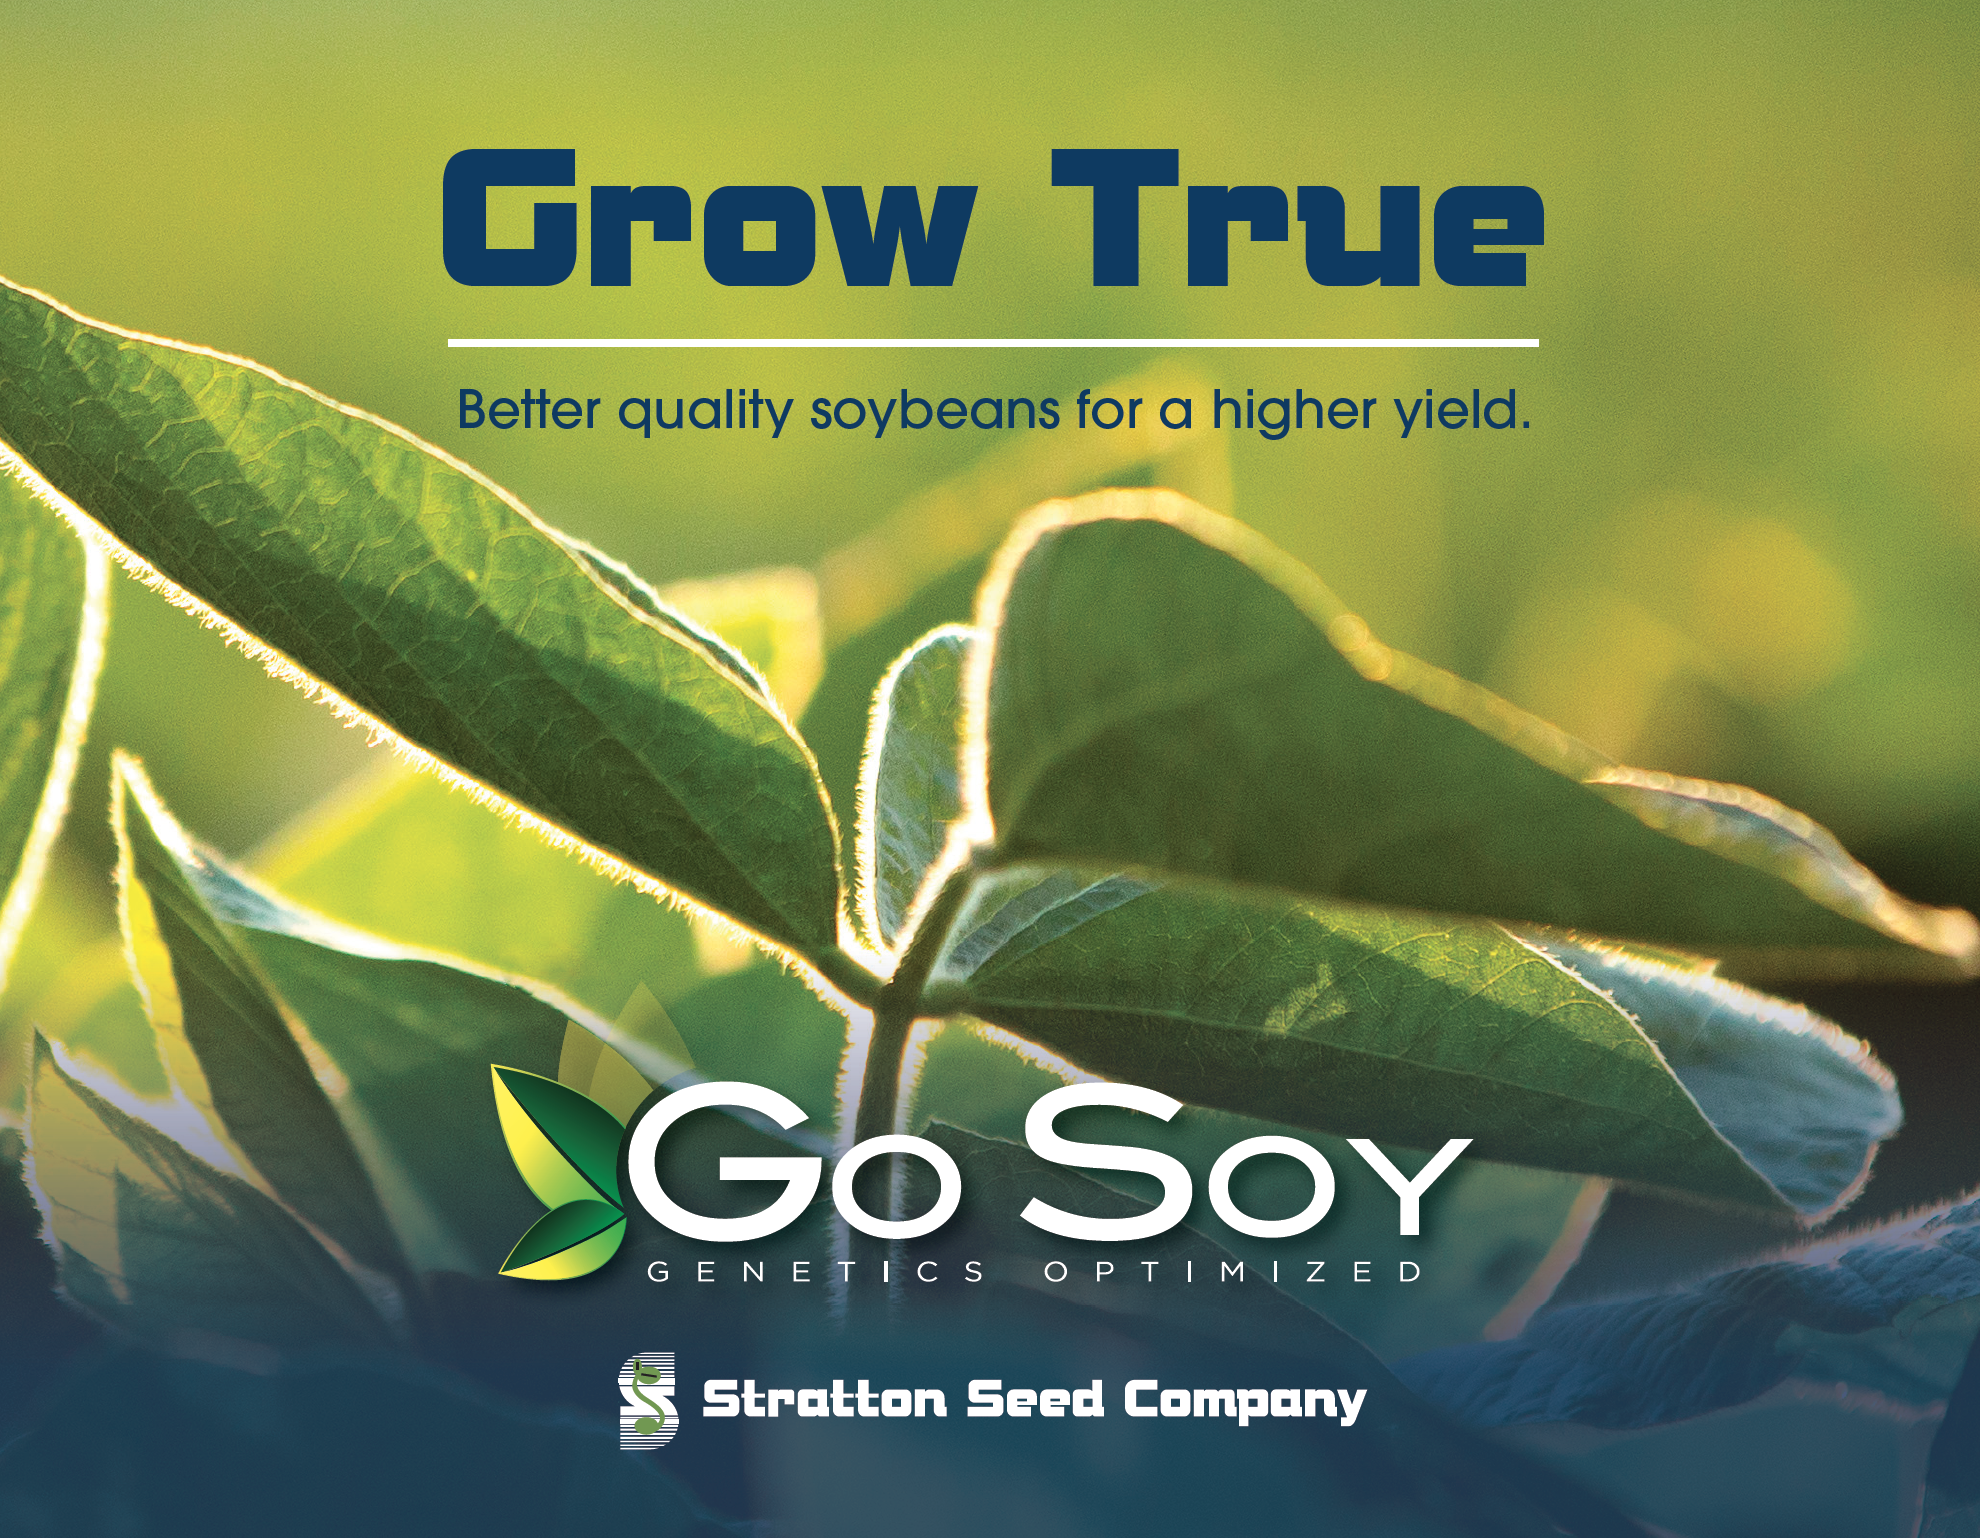 cover of brochure showing close up of soybean and GoSoy logo